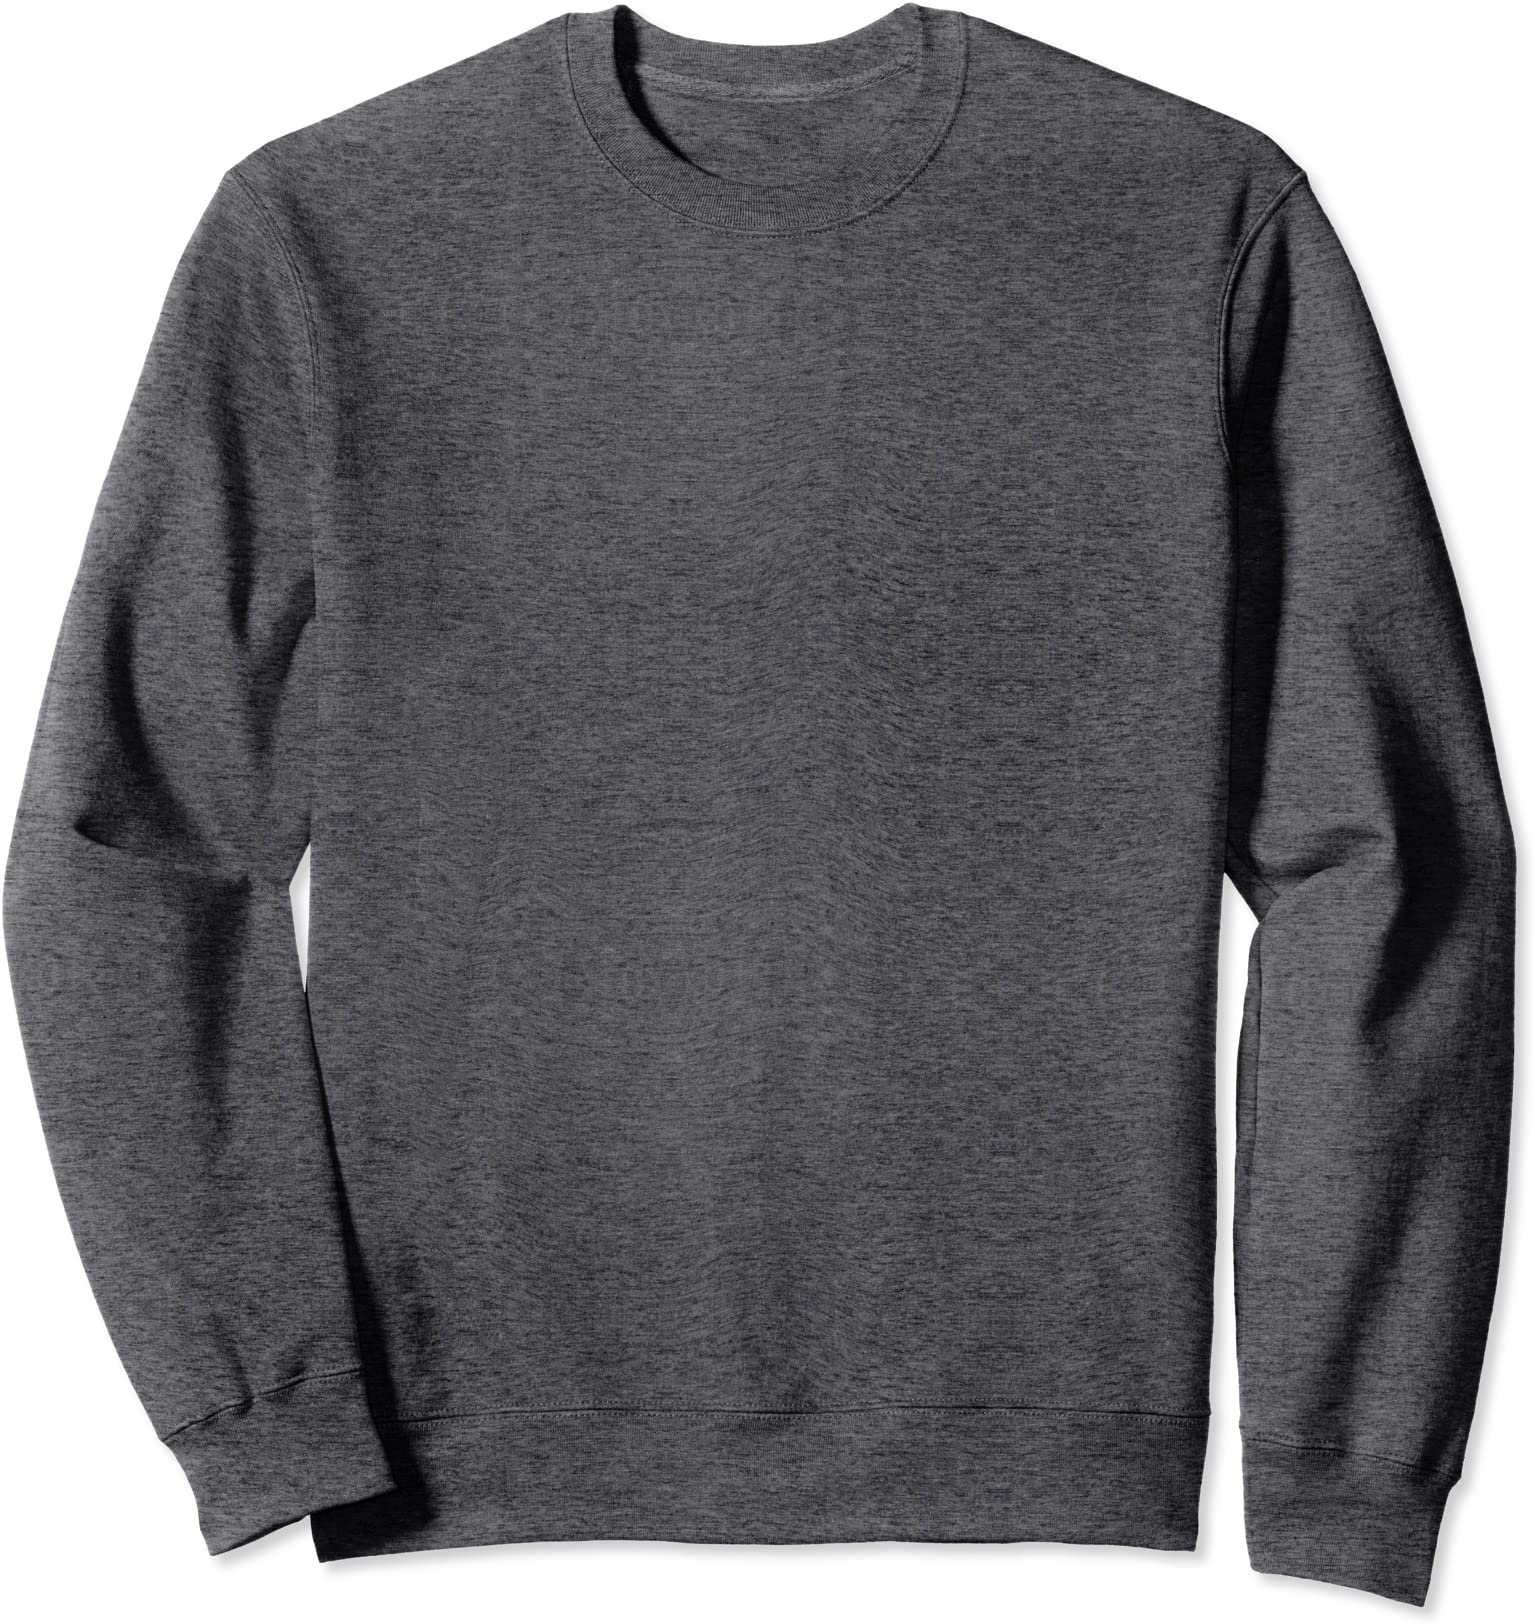 Unisex Black or Grey Sweatshirt Jumper I May Be Wrong But It/'s Highly Unlikely